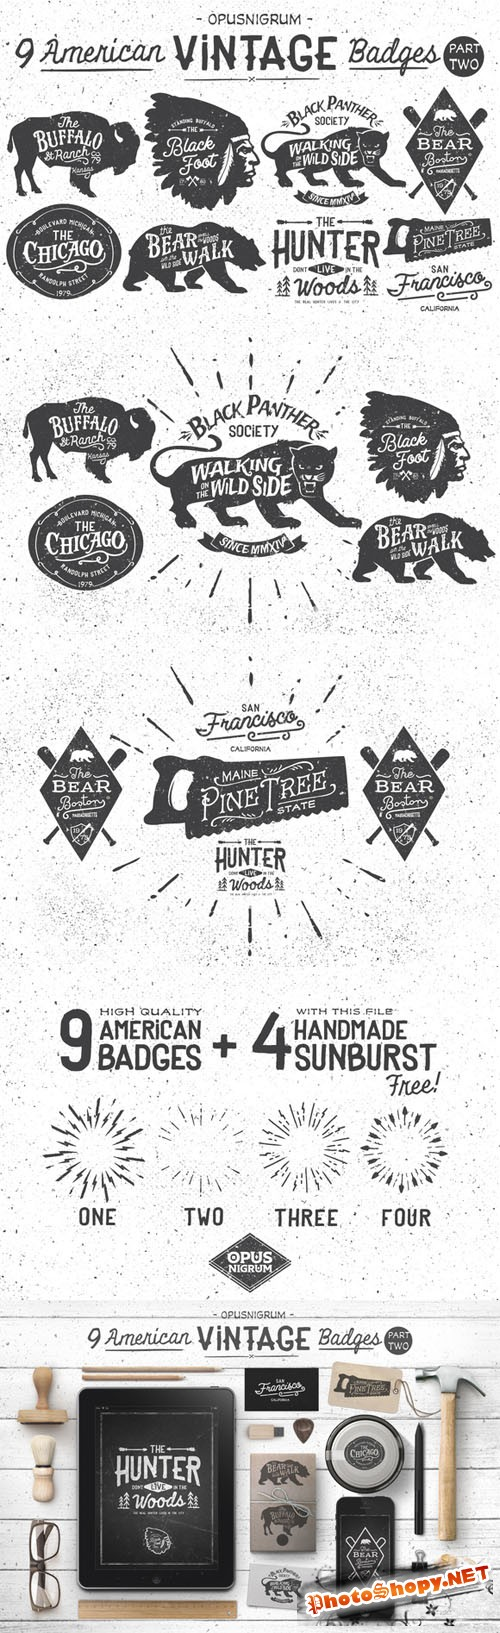 American Vintage Badges Part.2 - Creativemarket 48070